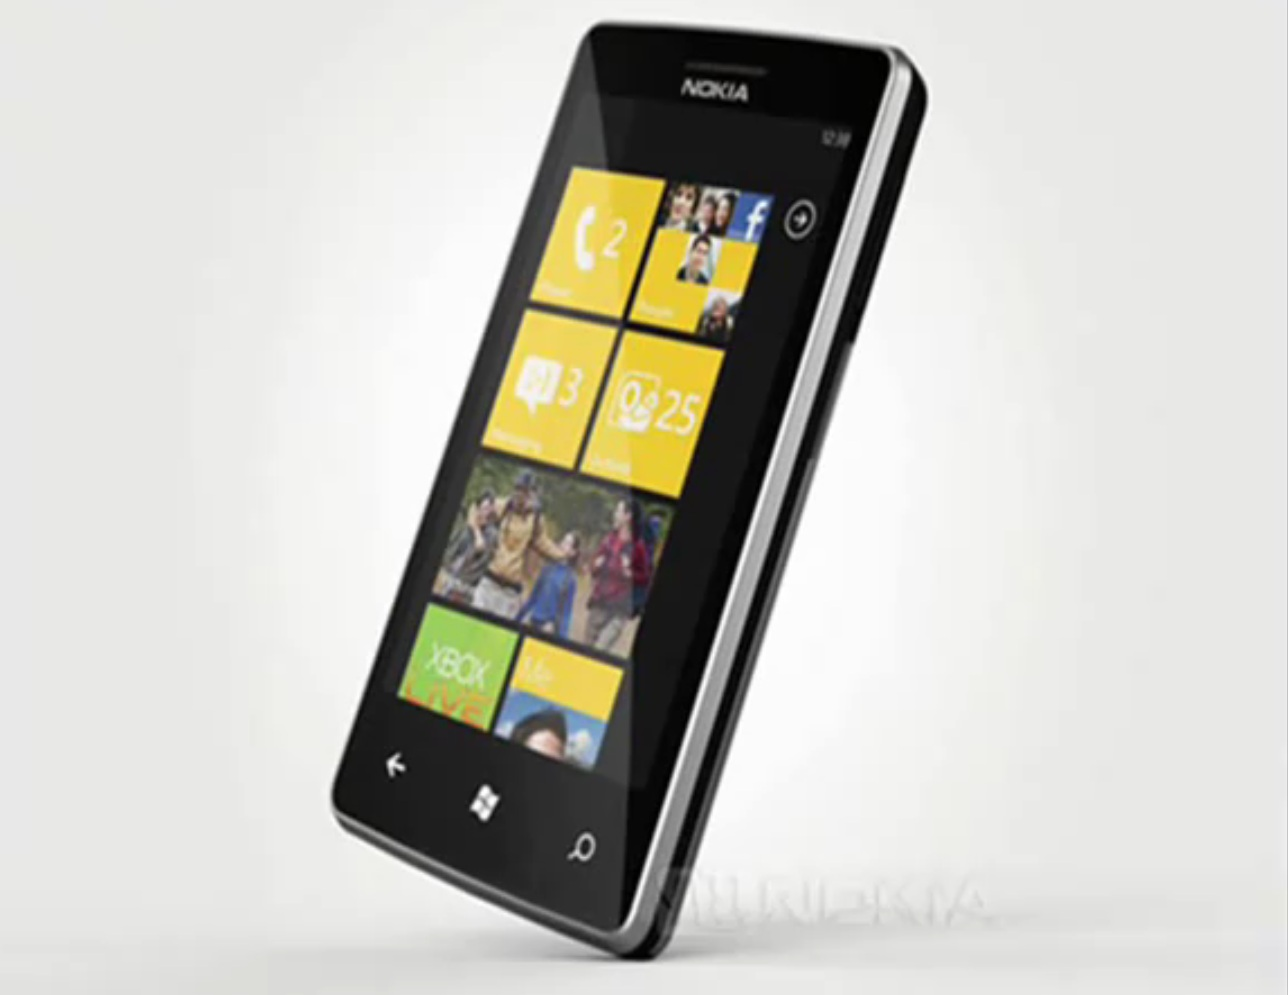 Nokia unlikely to ship Windows Phone 7 powered device… because they are too controlling ???